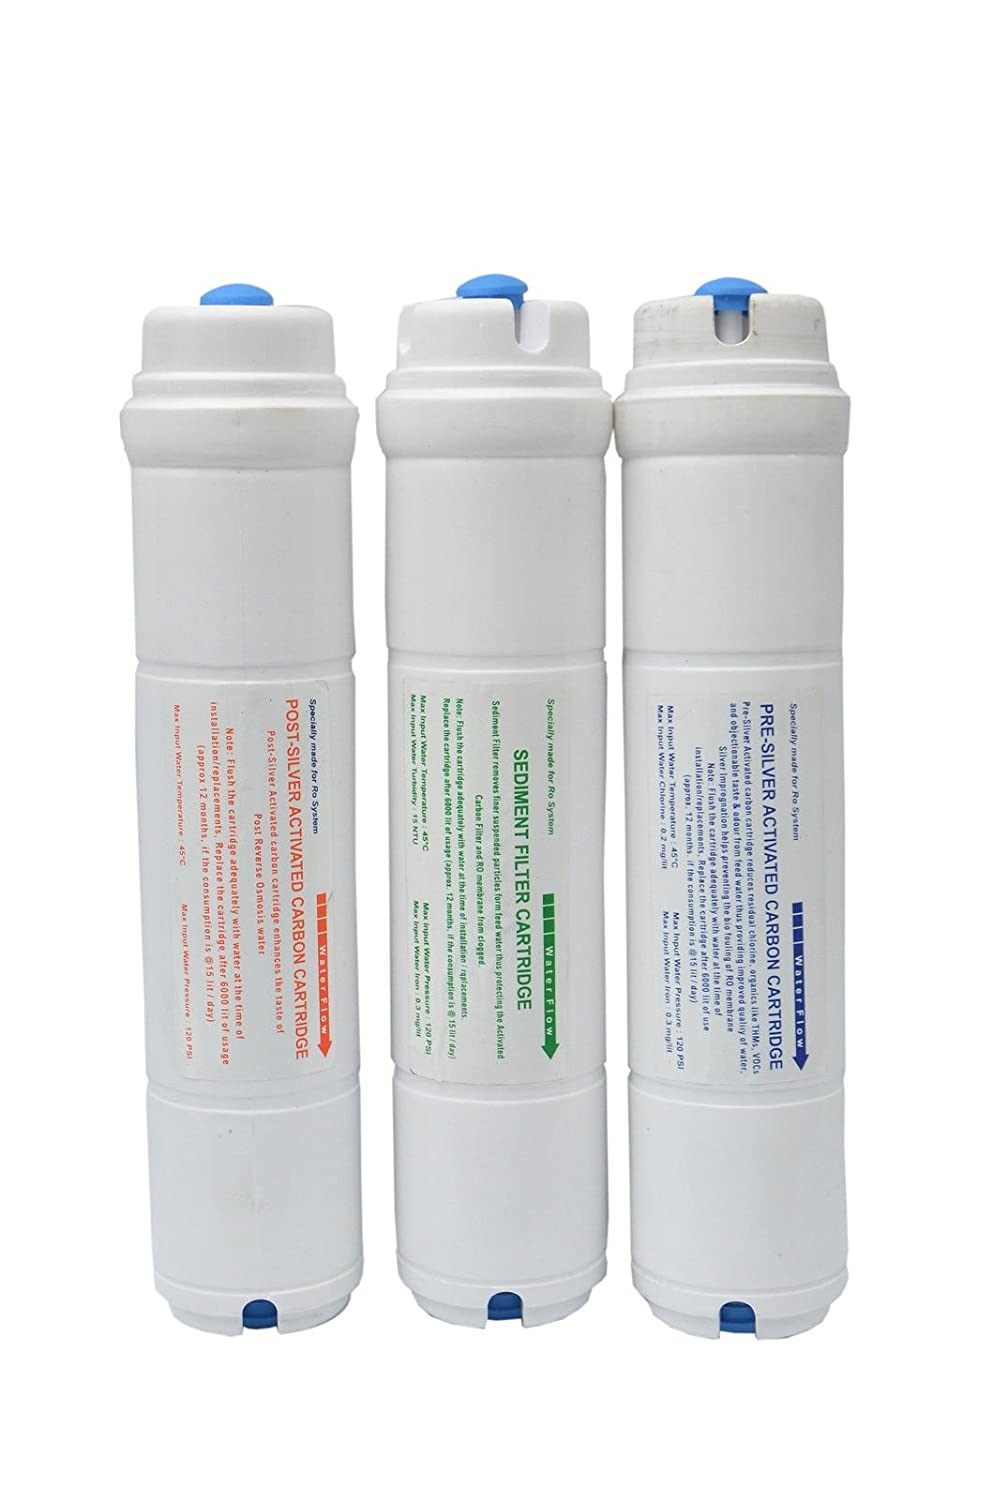 XISOM Polycarbonate Carbon/Sediment Filters Set for Aquaguard Eureka